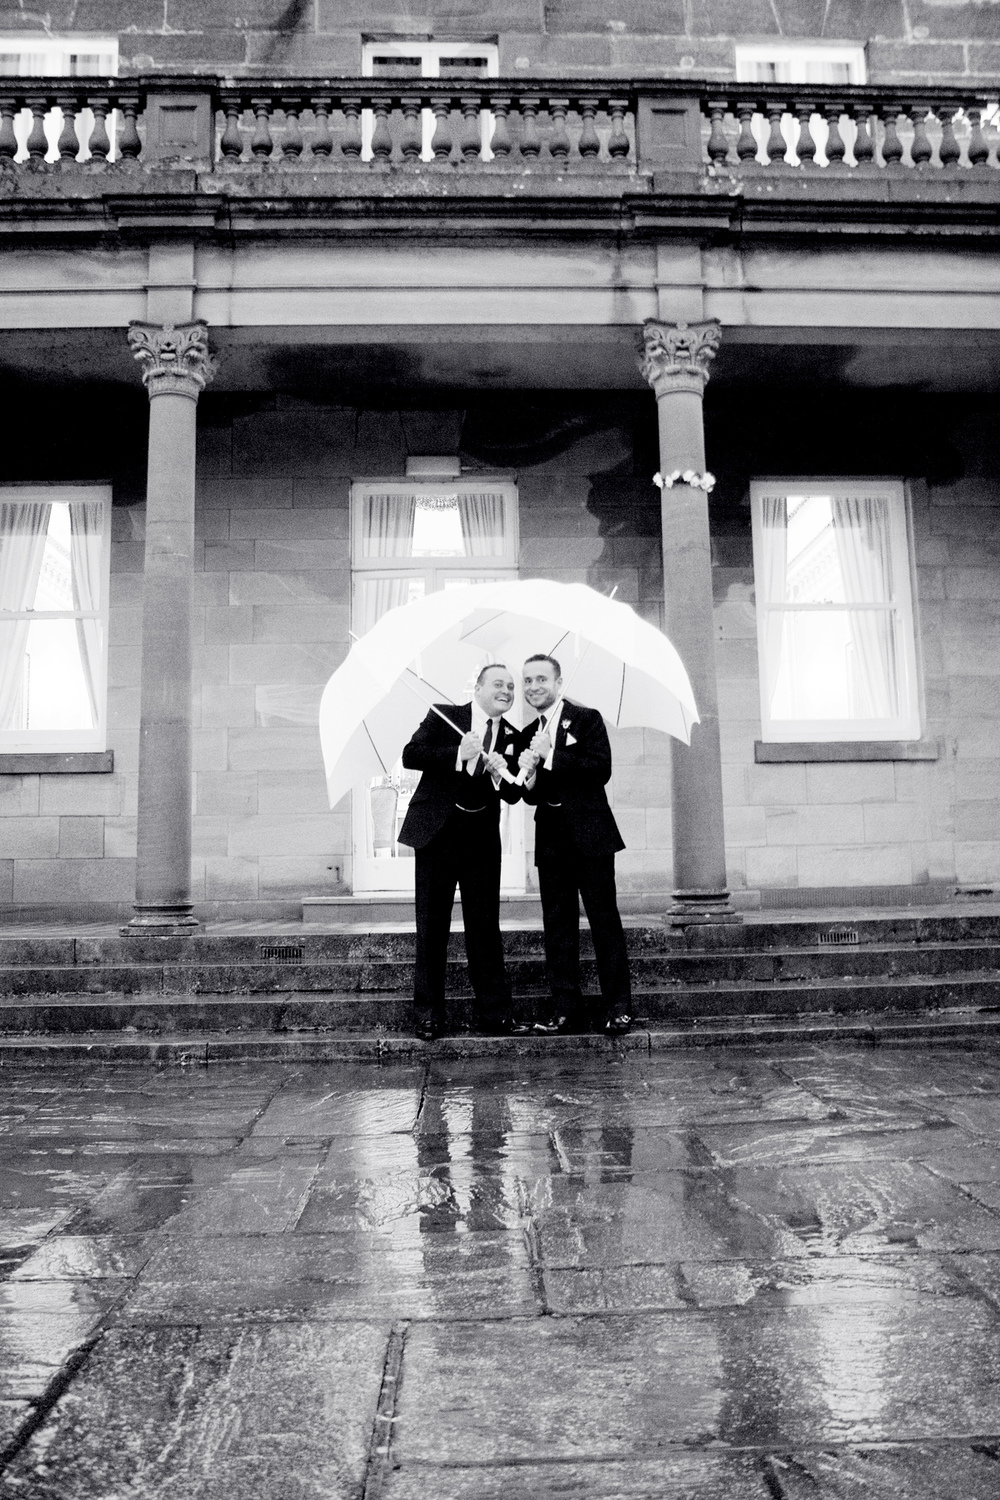 Salomons Wedding Venue, Winter Wedding, Black & White, Same Sex Wedding, Helen England Photography, Kent, U.K